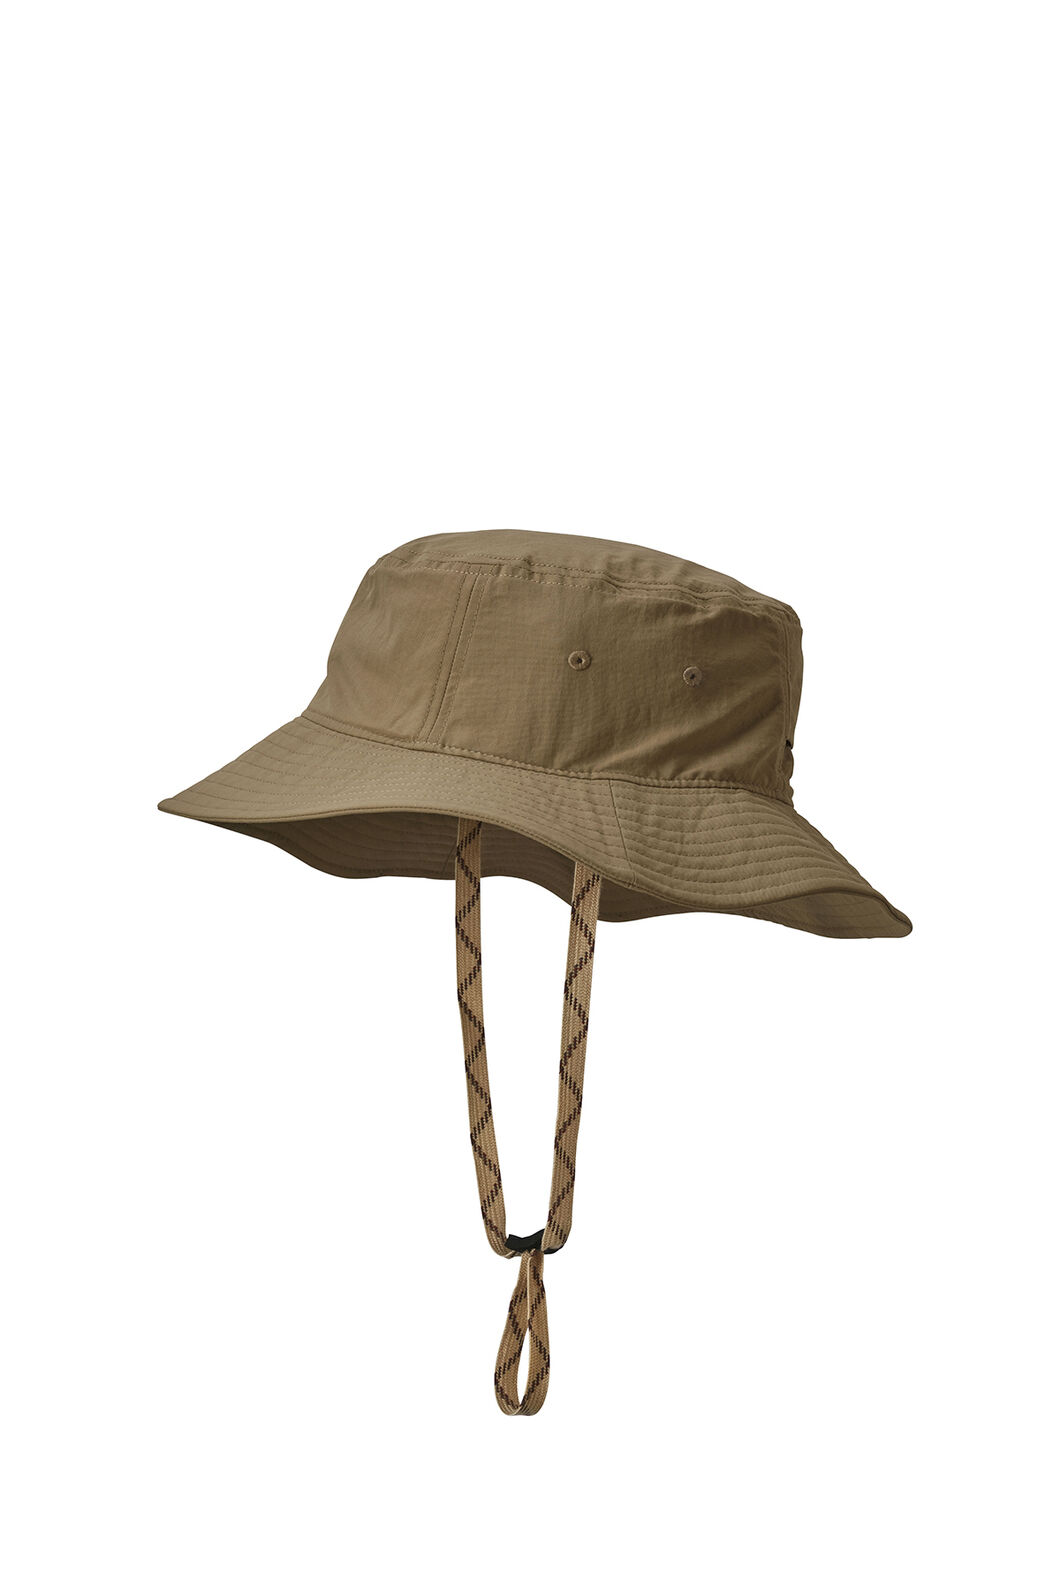 Patagonia Mickledore Hat — Men's, Ash Tan, hi-res